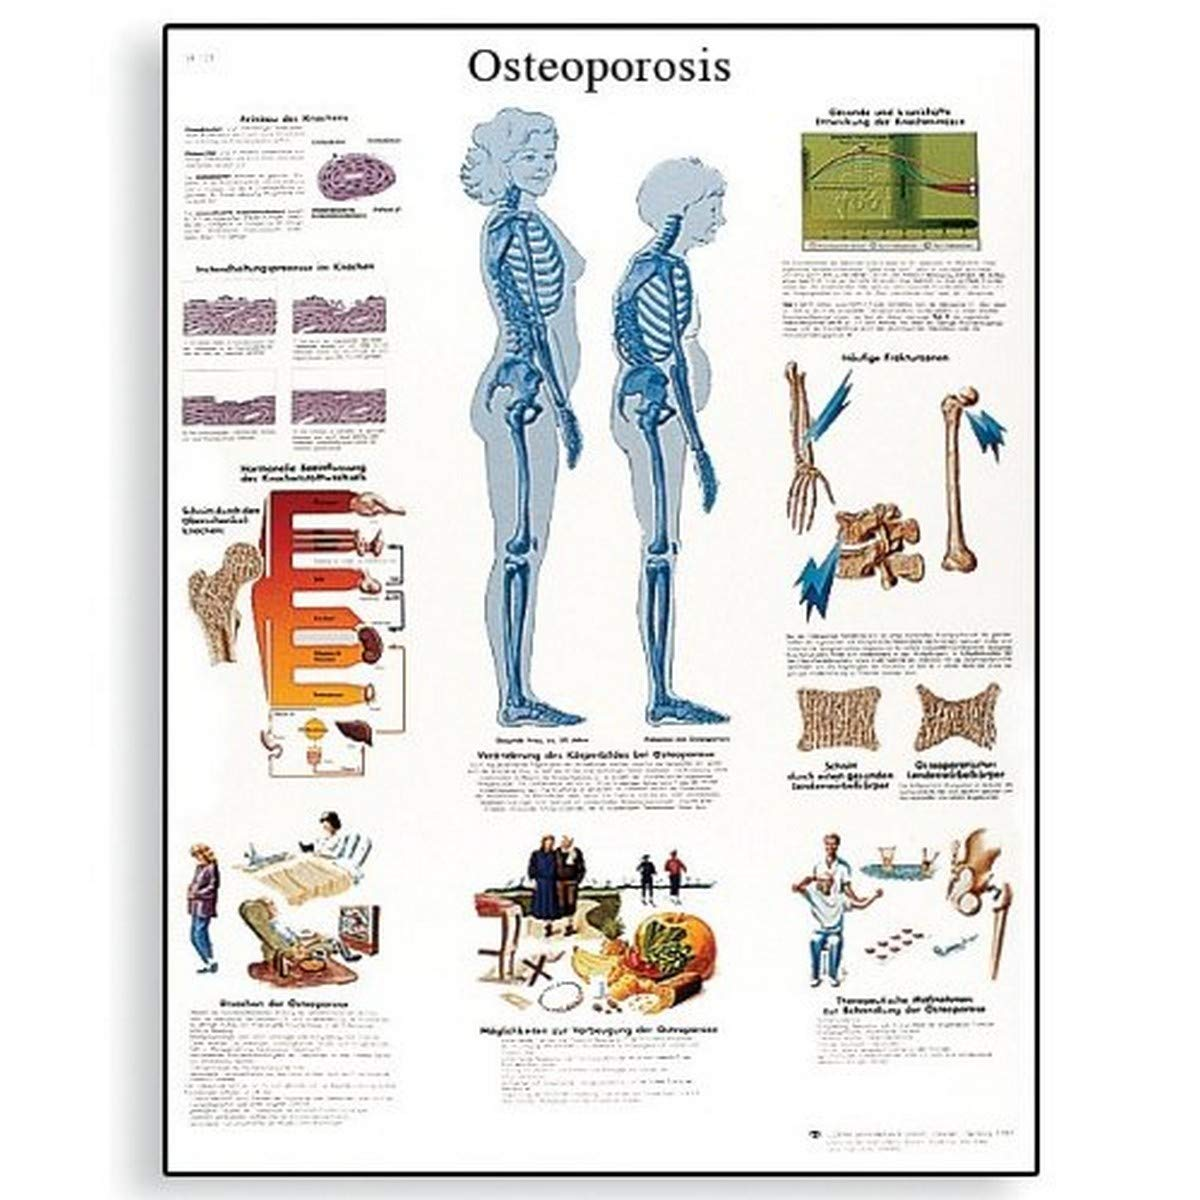 Poster Size 20 Width x 26 Height 3B Scientific VR1554UU Glossy Paper Pregnancy Anatomical Chart